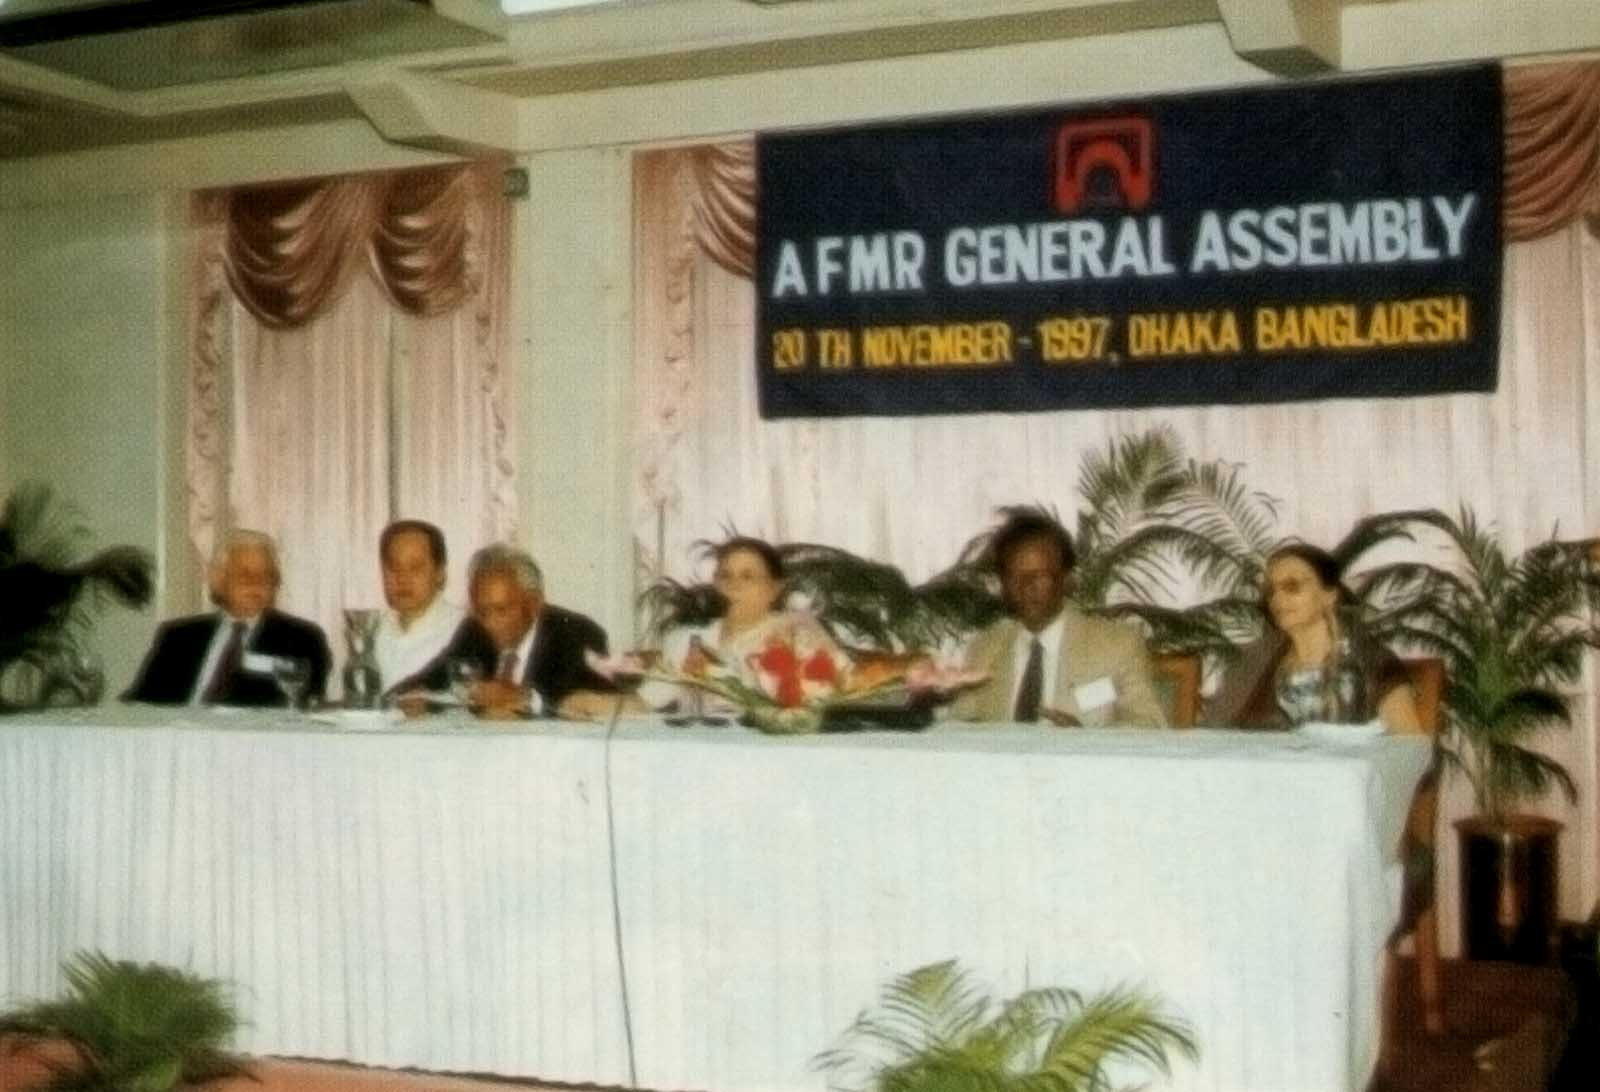 Honorable members at AFMR General Assembly, 1997